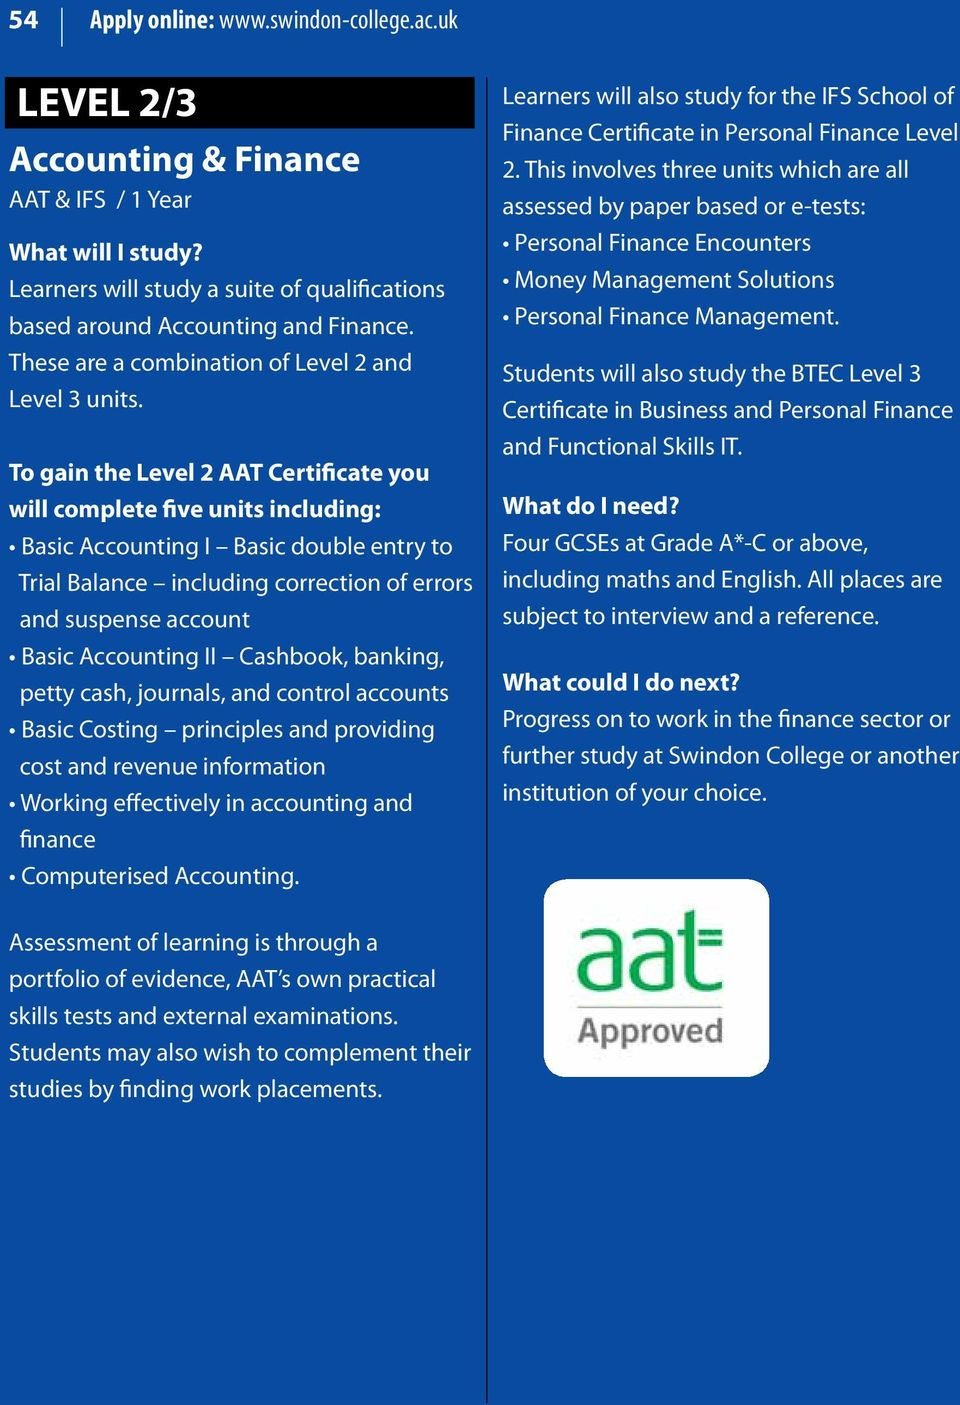 To gain the Level 2 AAT Certificate you will complete five units including: Basic Accounting I Basic double entry to Trial Balance including correction of errors and suspense account Basic Accounting